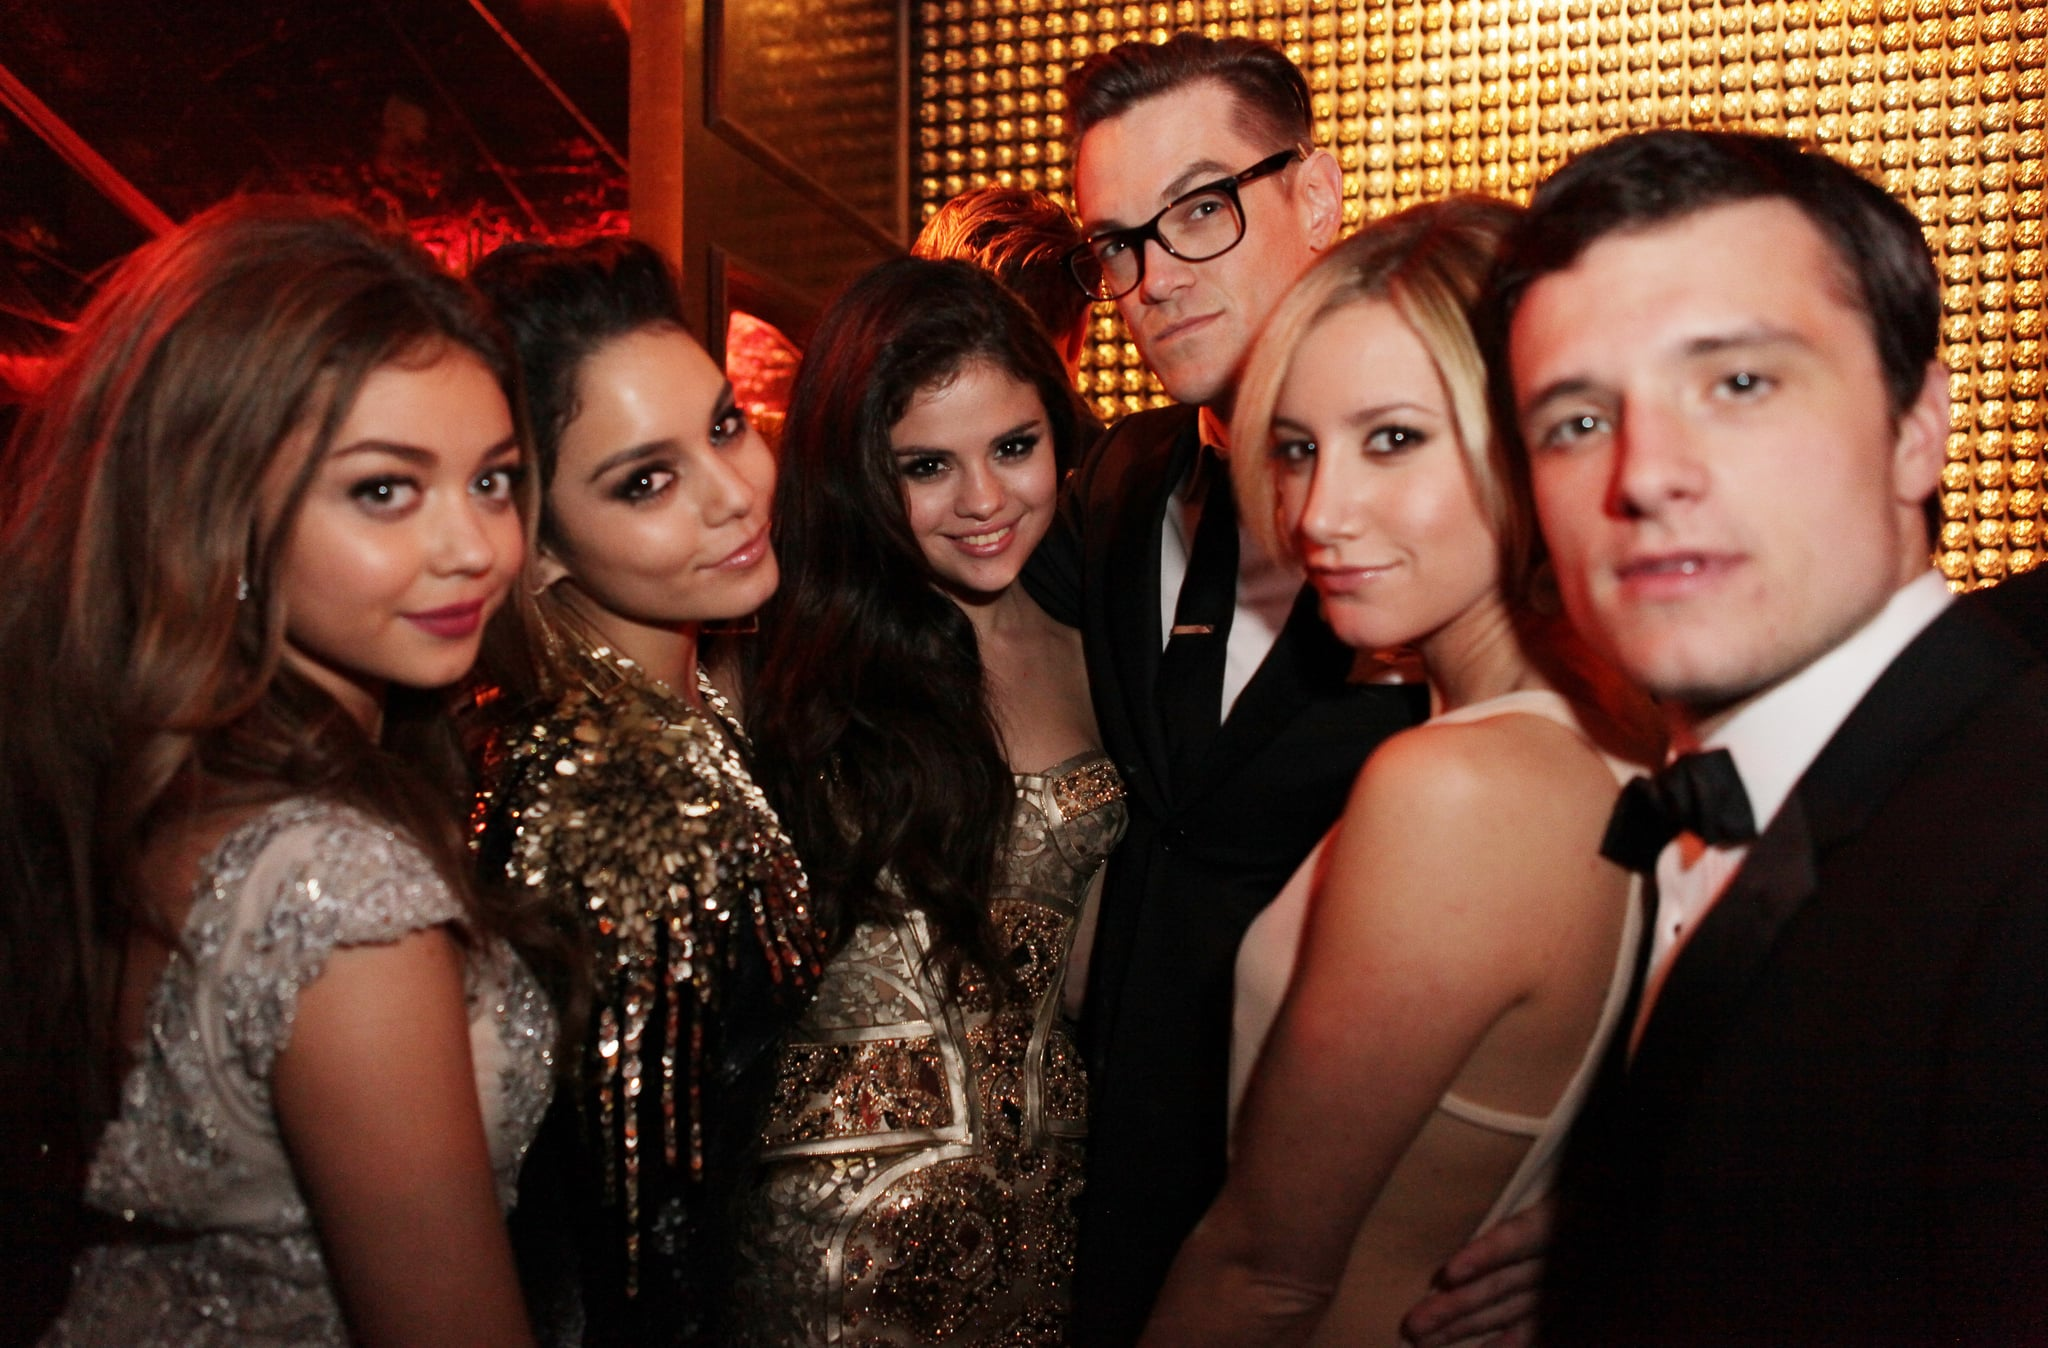 Selena Gomez poses with a group of young Hollywood stars at a Golden Globes afterparty, including Josh Hutcherson, Ashley Tisdale, and Selena's Spring Breakers costar Vanessa Hudgens.